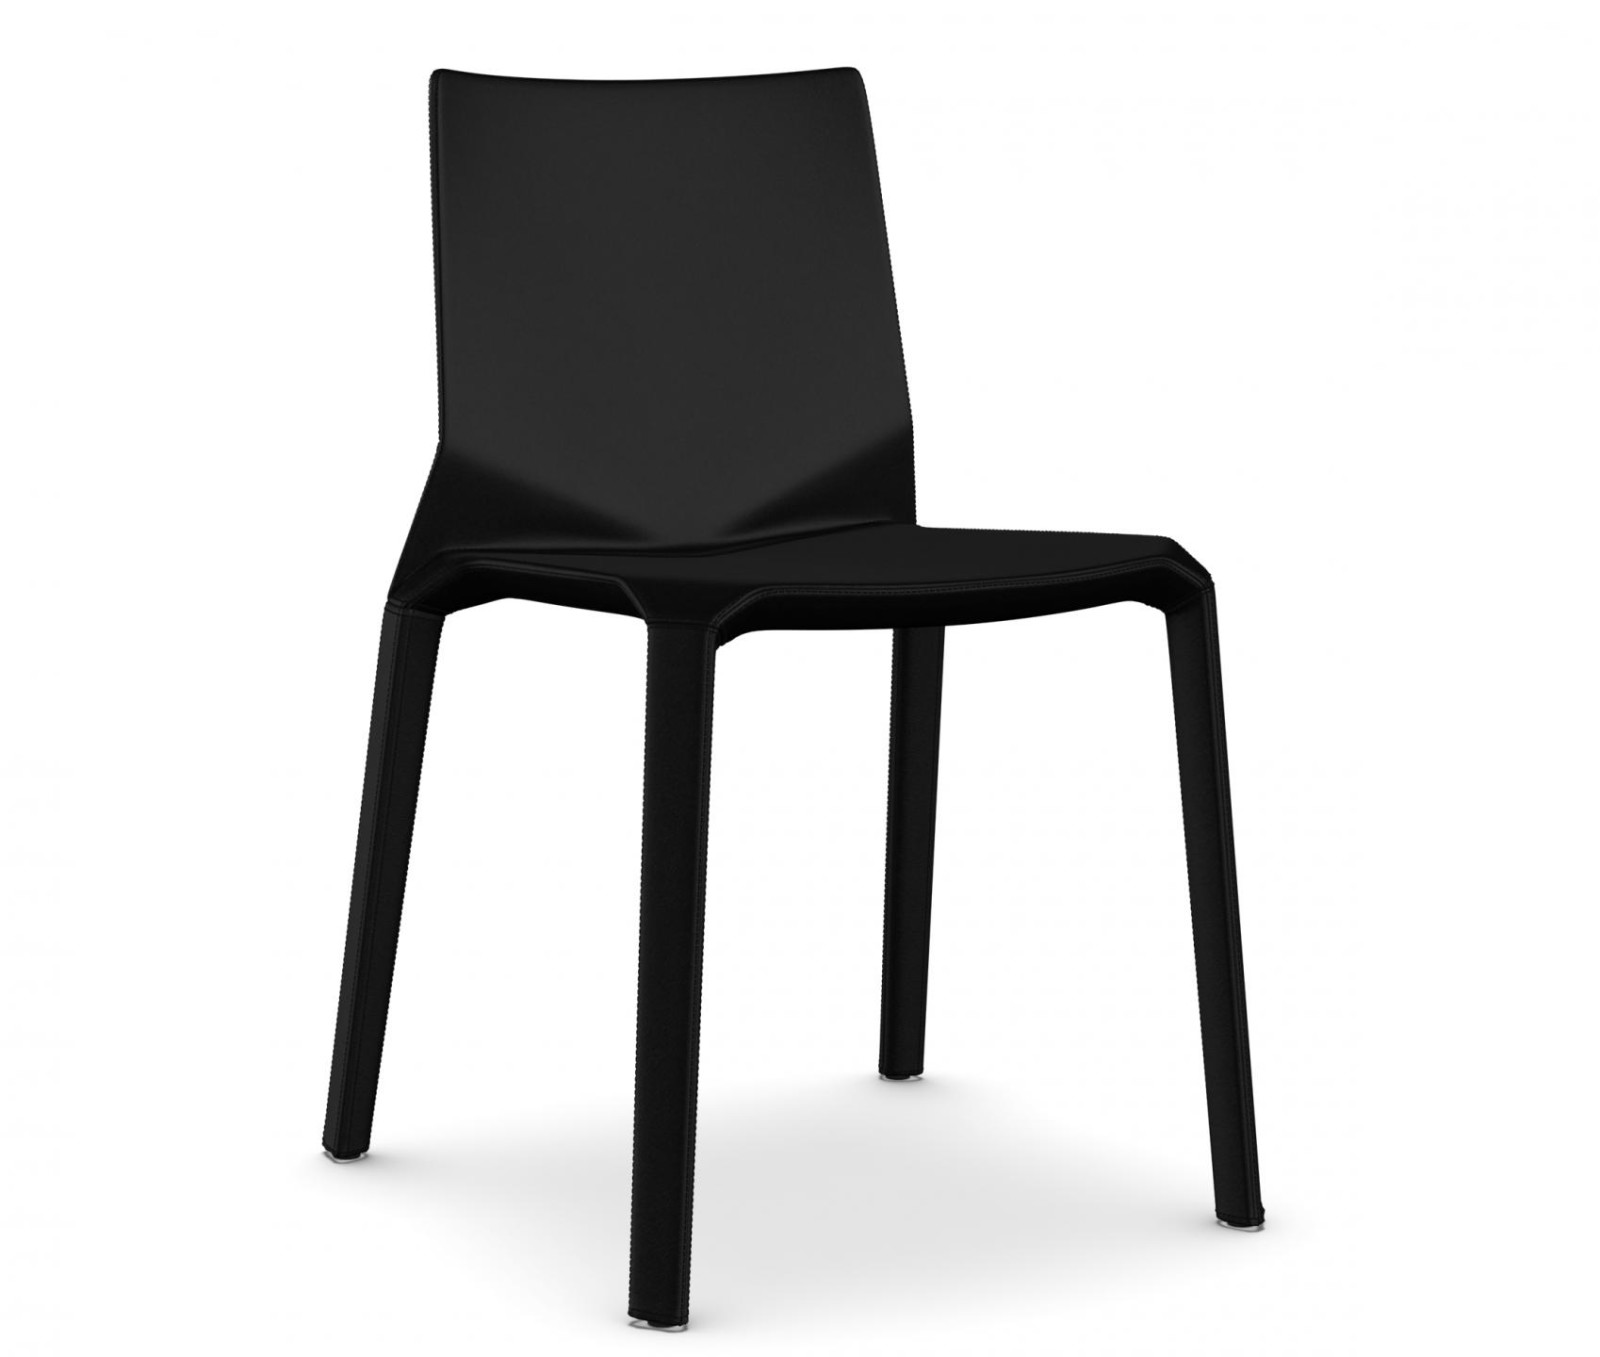 Plana Chair Upholstered A2593 - Extrema/AU 2250 black